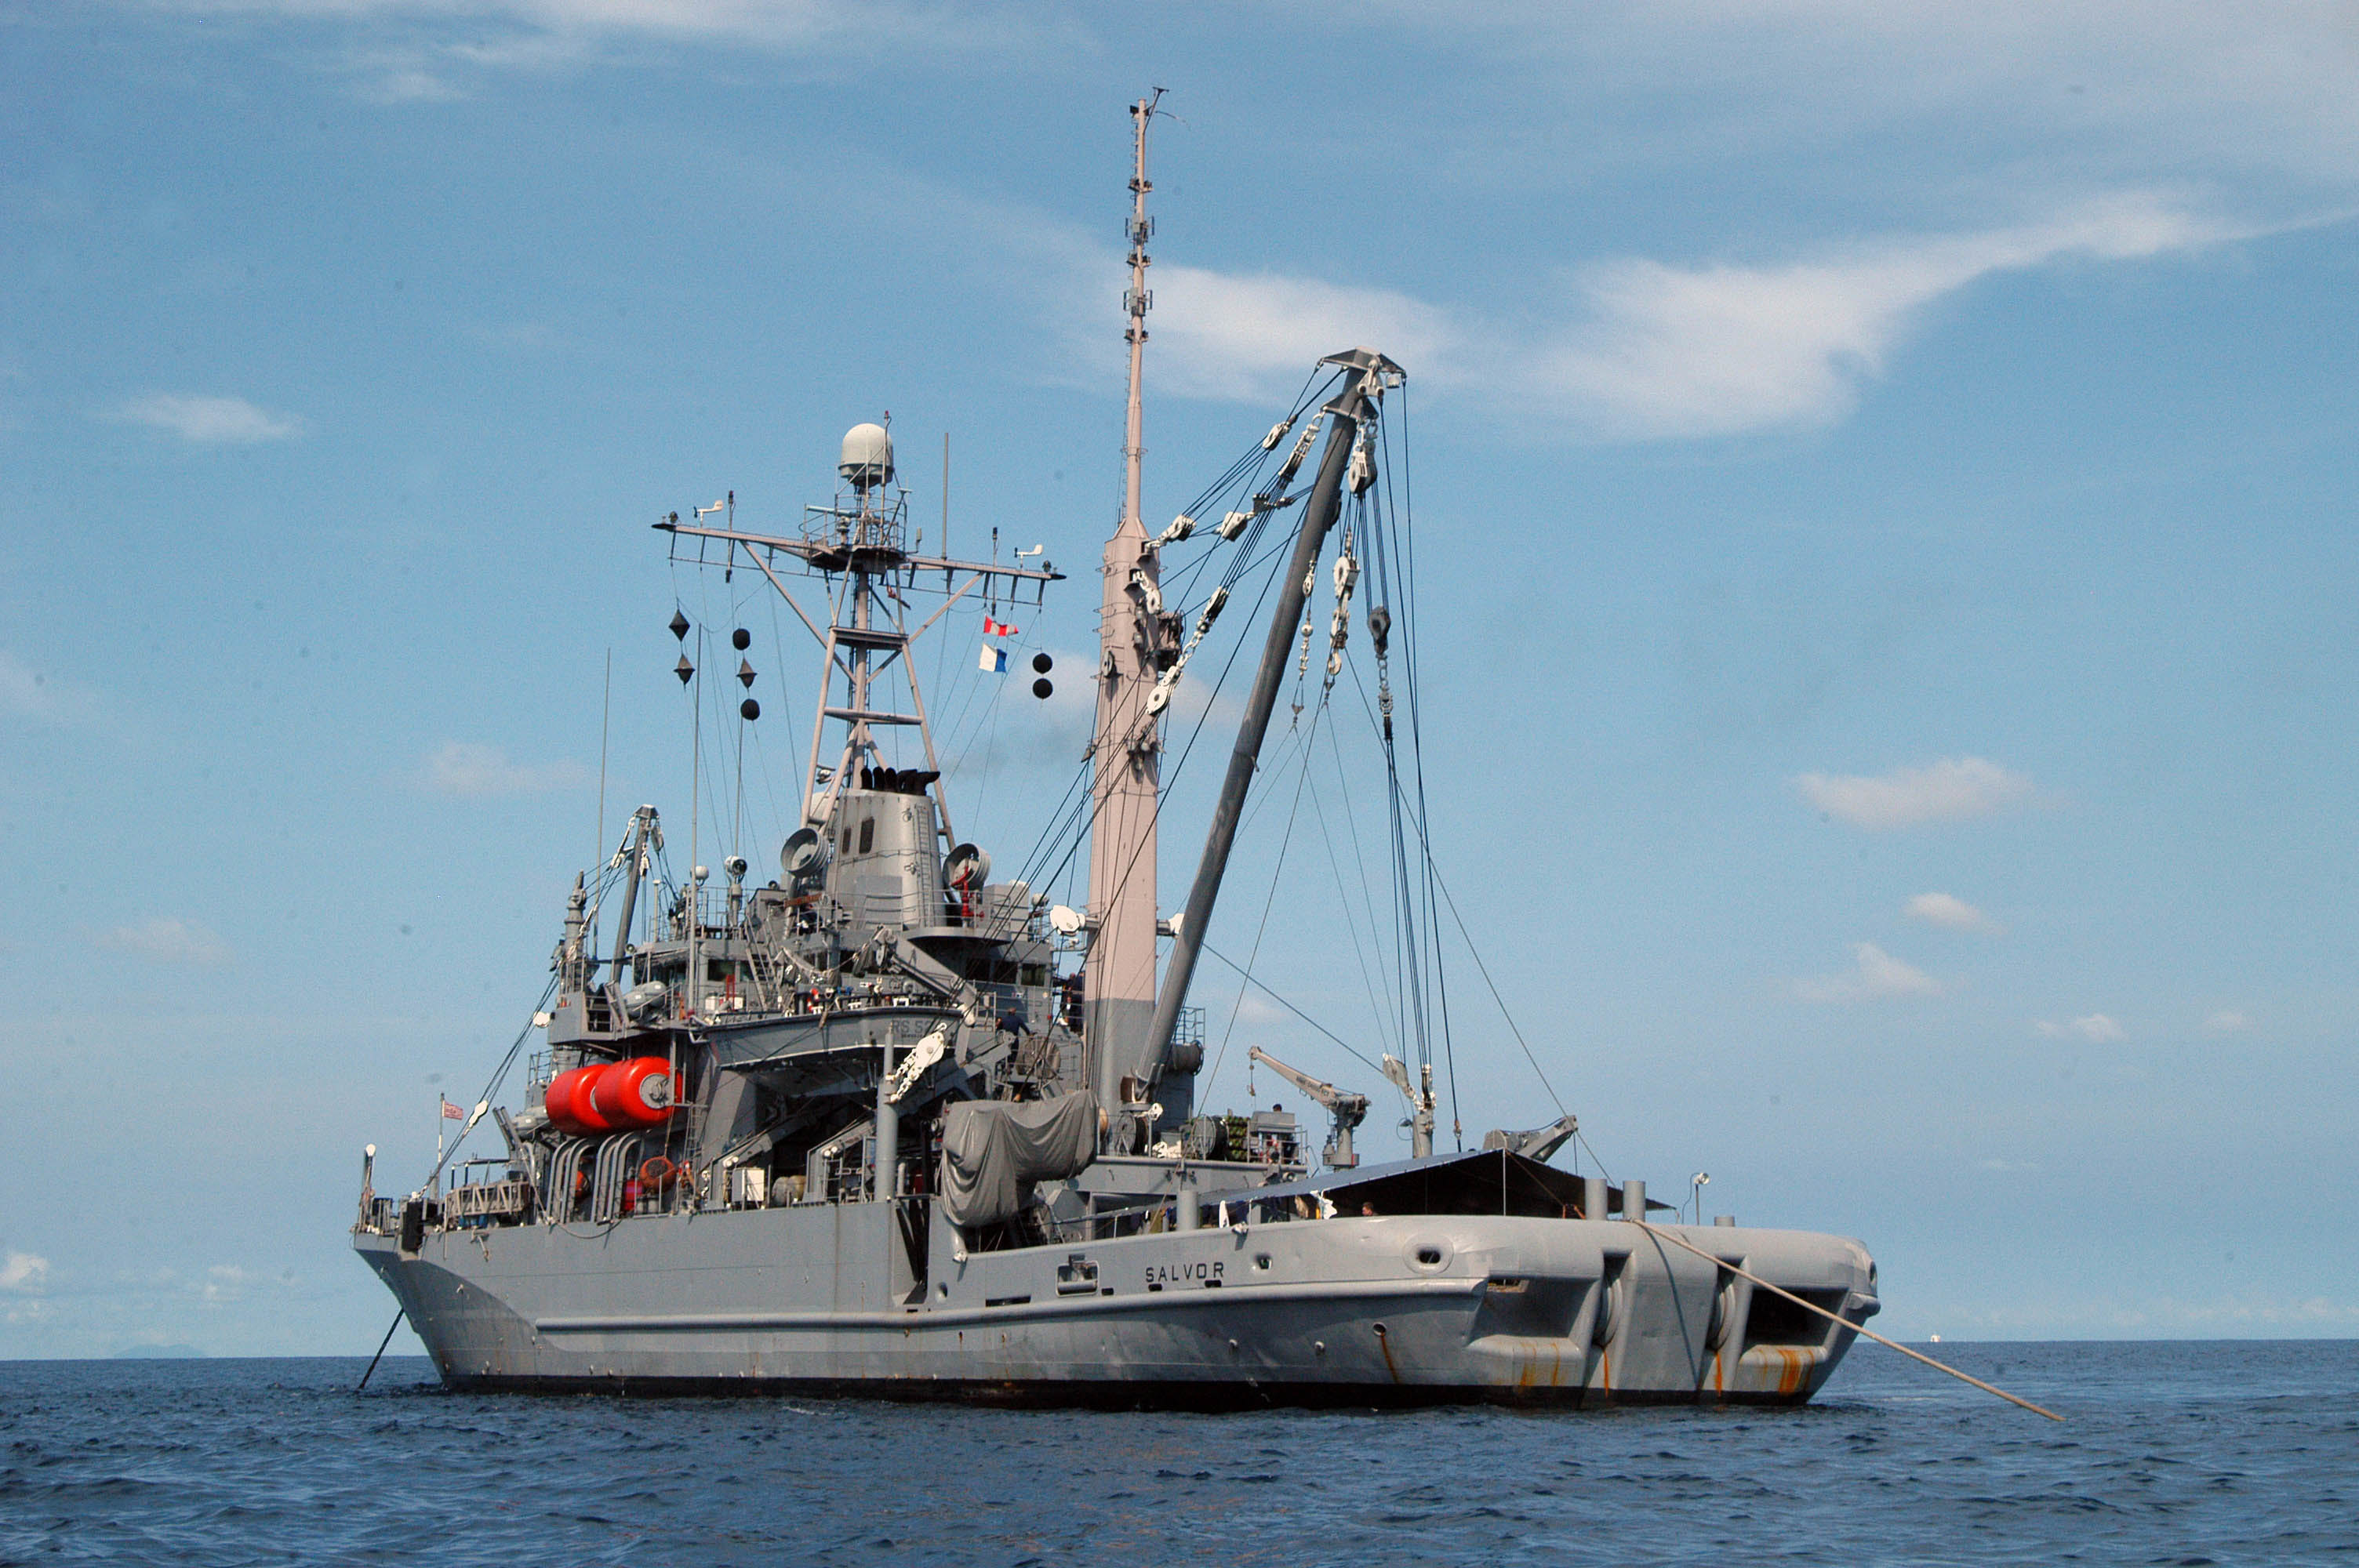 File:US Navy 040920-N-0106C-001 Auxiliary rescue and ... |Navy Salvage Ships